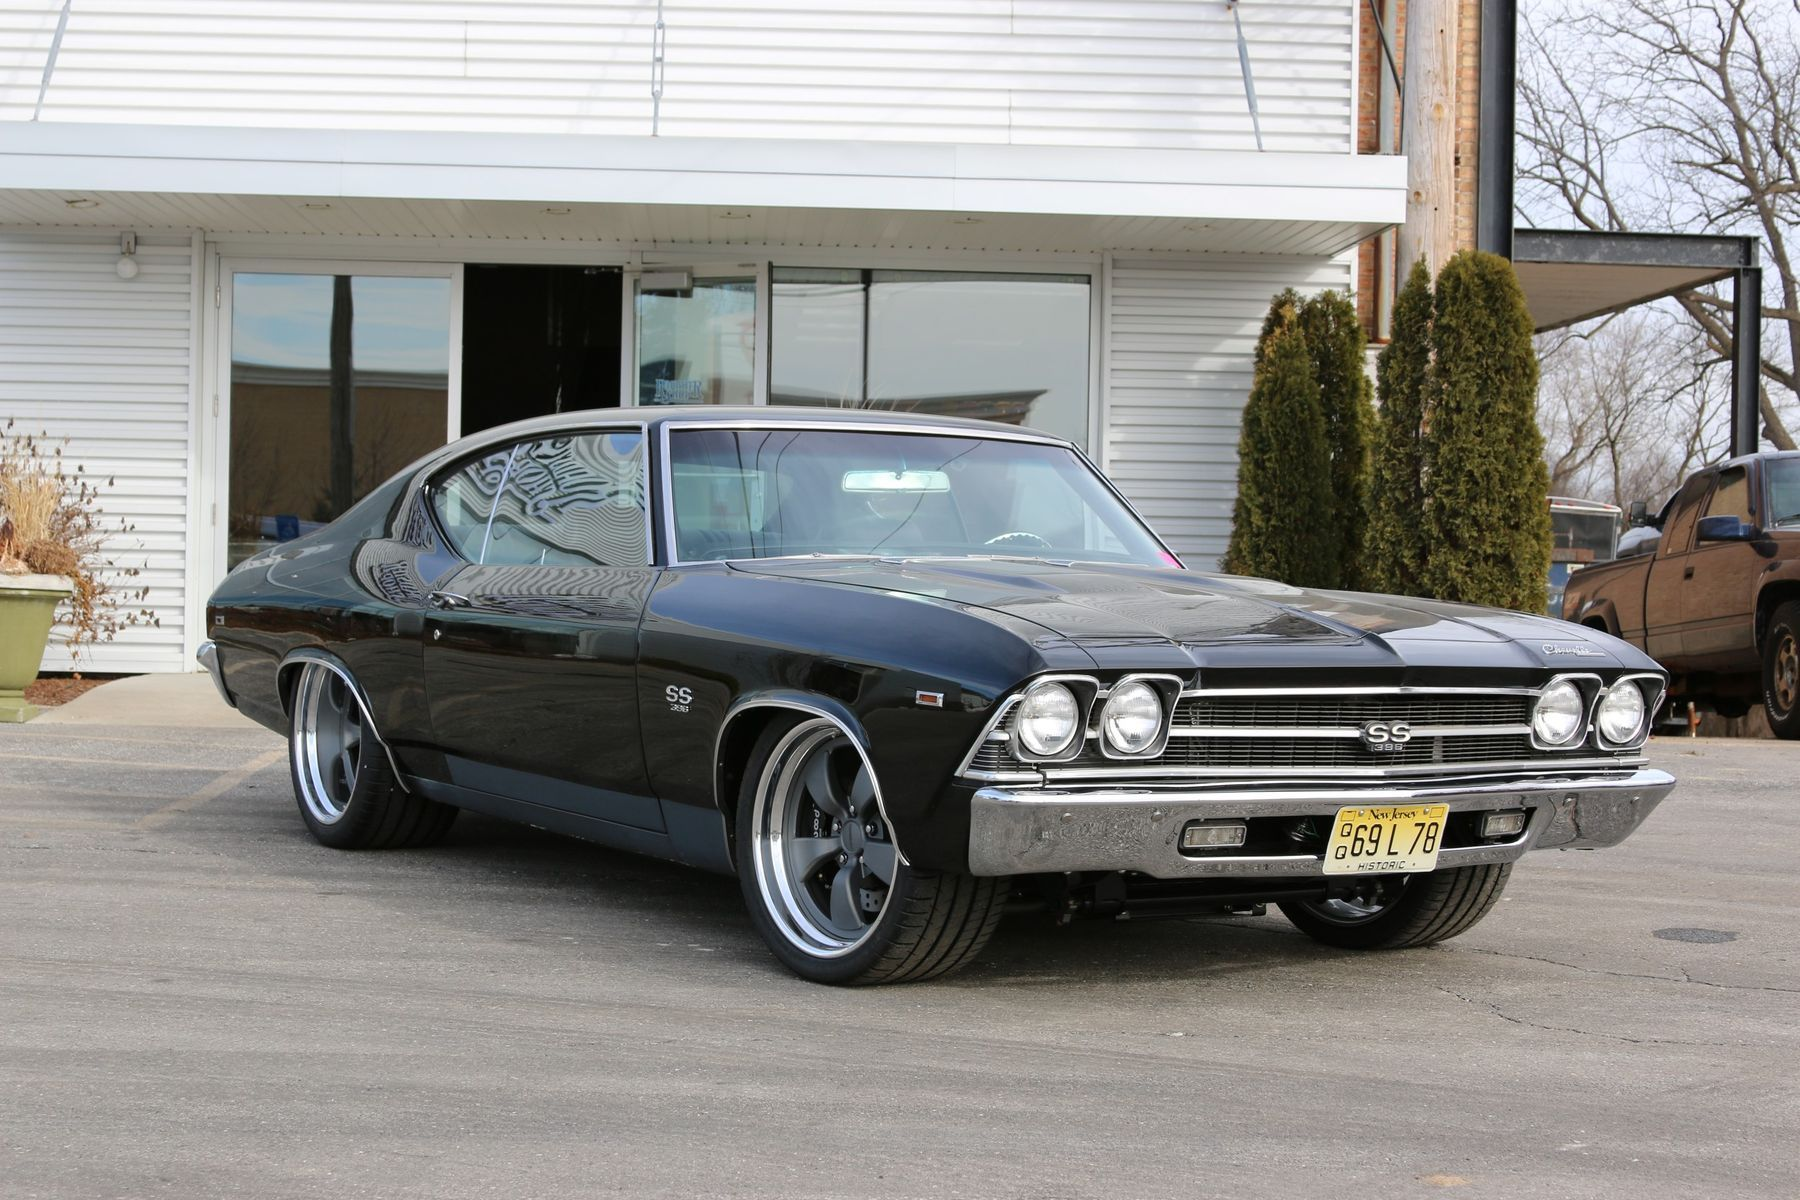 1969 Chevrolet Chevelle | Roadster Shop Chevelle SS on Forgeline CR3 Wheels